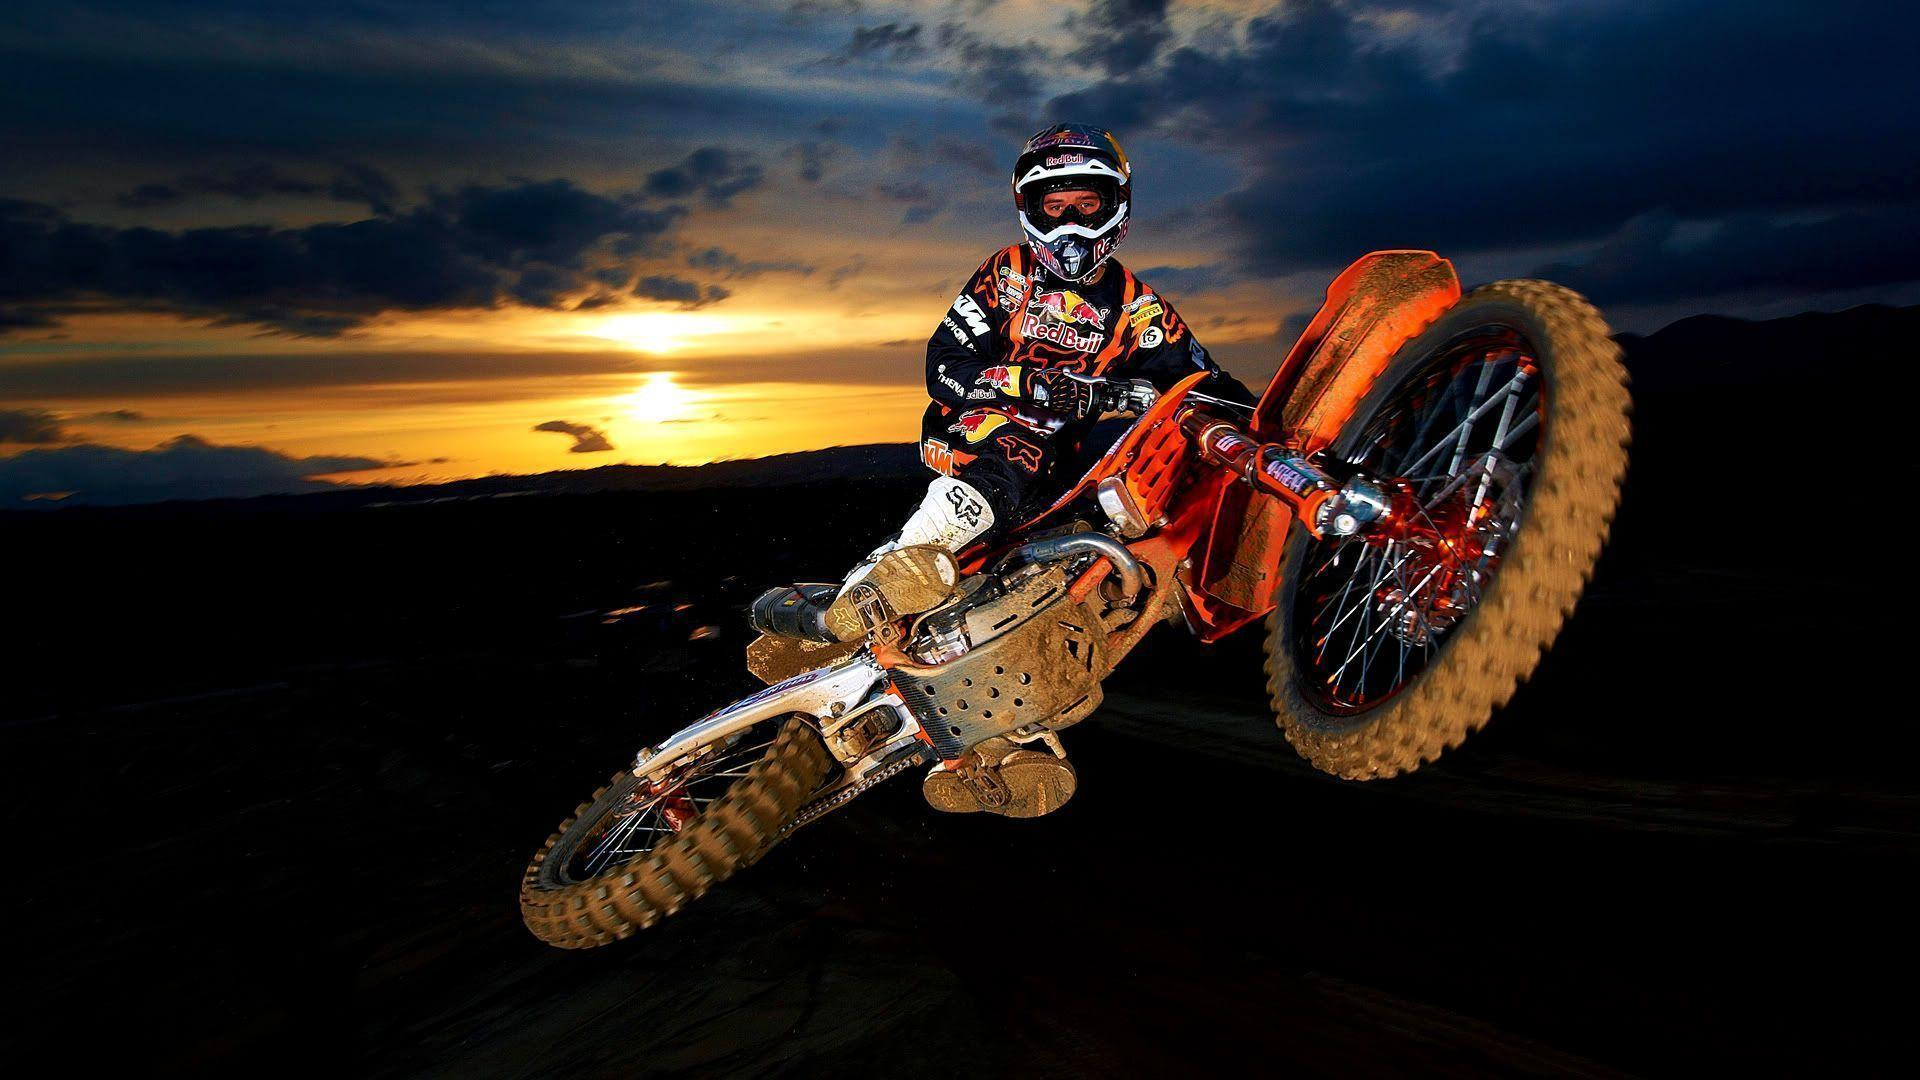 Wallpapers Motocross Ktm Wallpaper Cave HD Wallpapers Download Free Images Wallpaper [1000image.com]